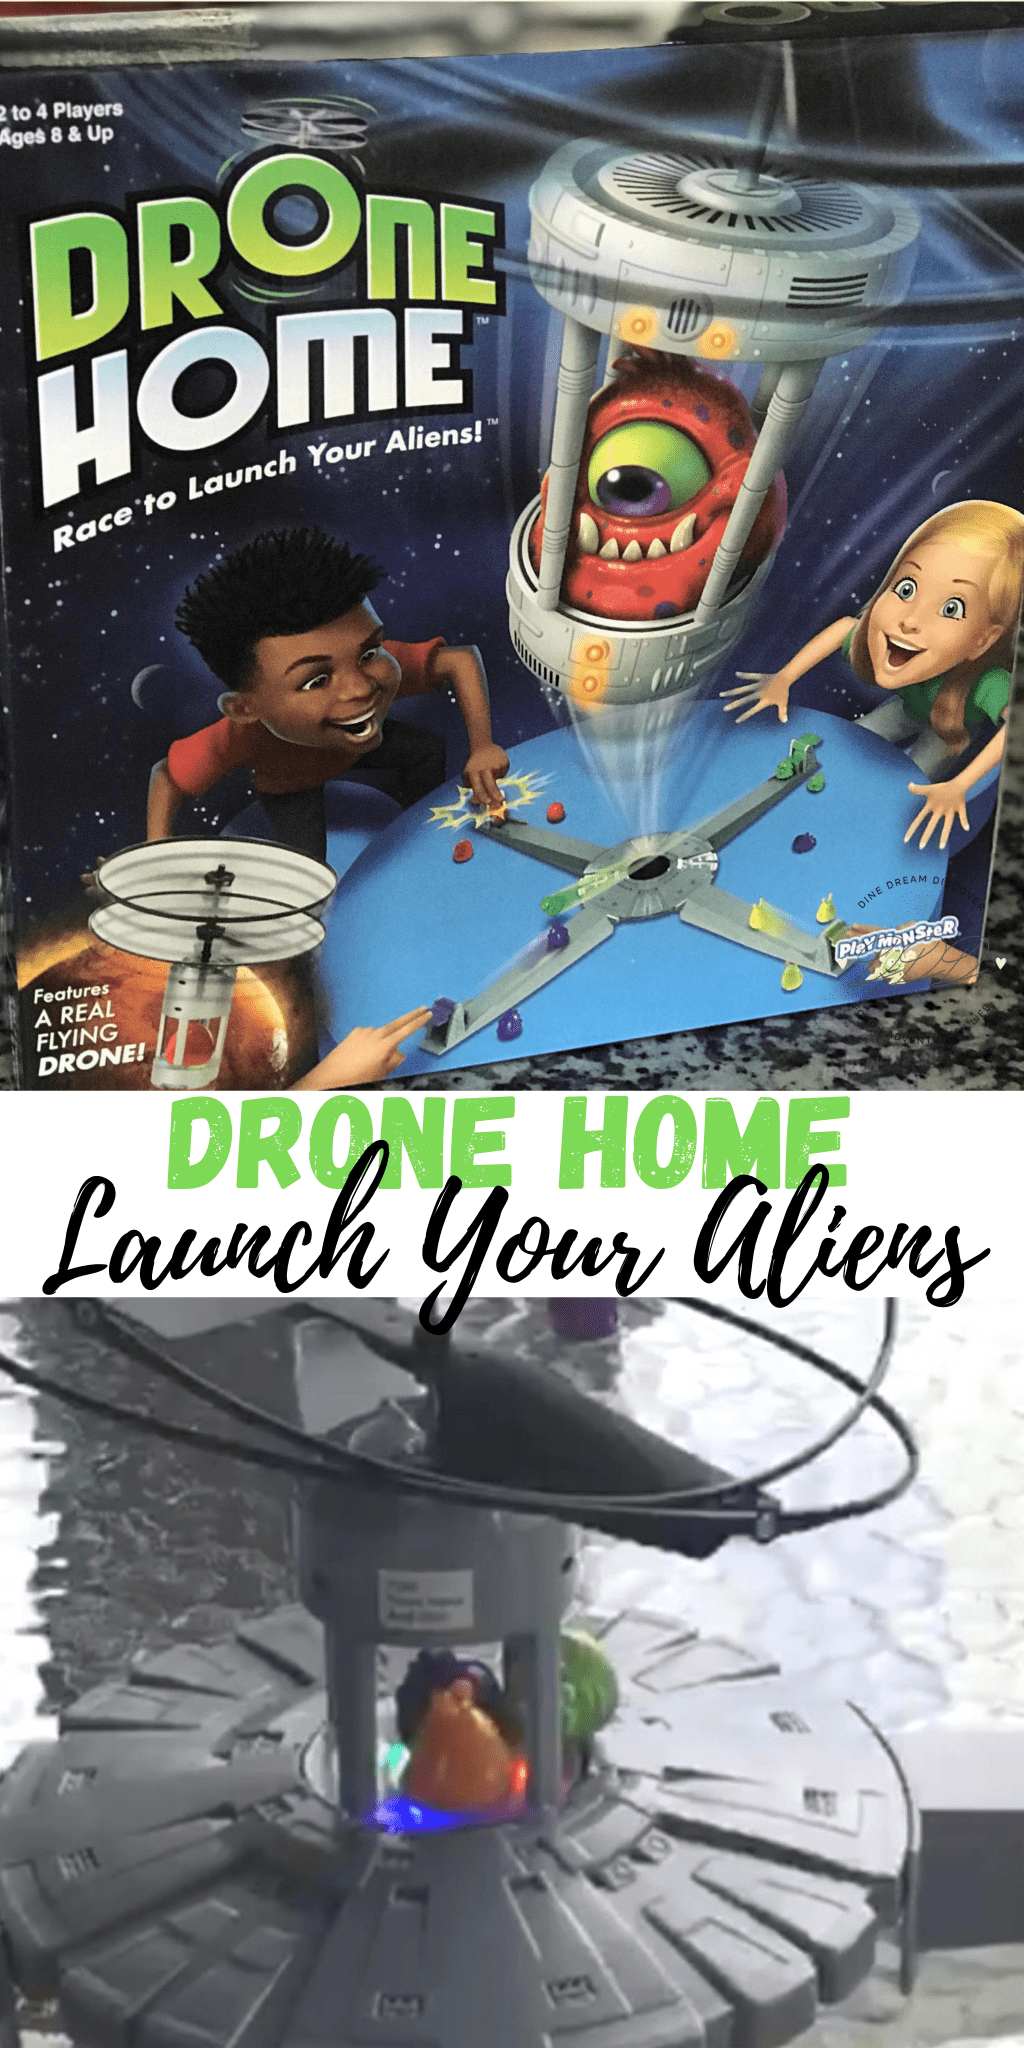 Launch Your Aliens in Drone Home